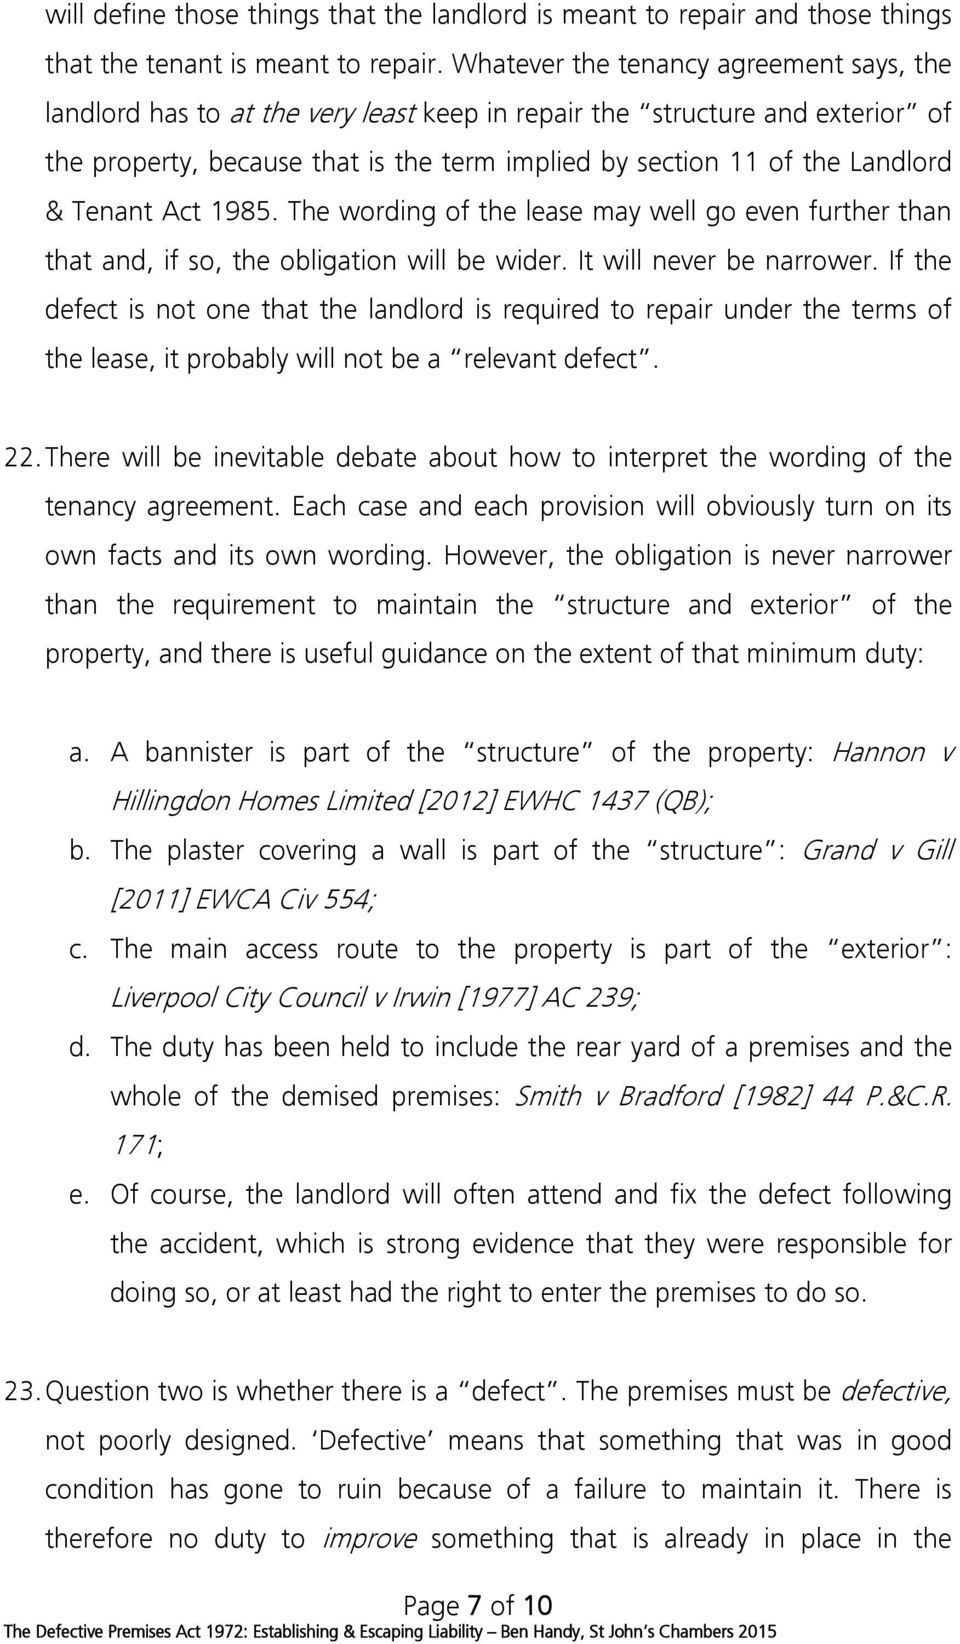 Tenant Act 1985. The wording of the lease may well go even further than that and, if so, the obligation will be wider. It will never be narrower.